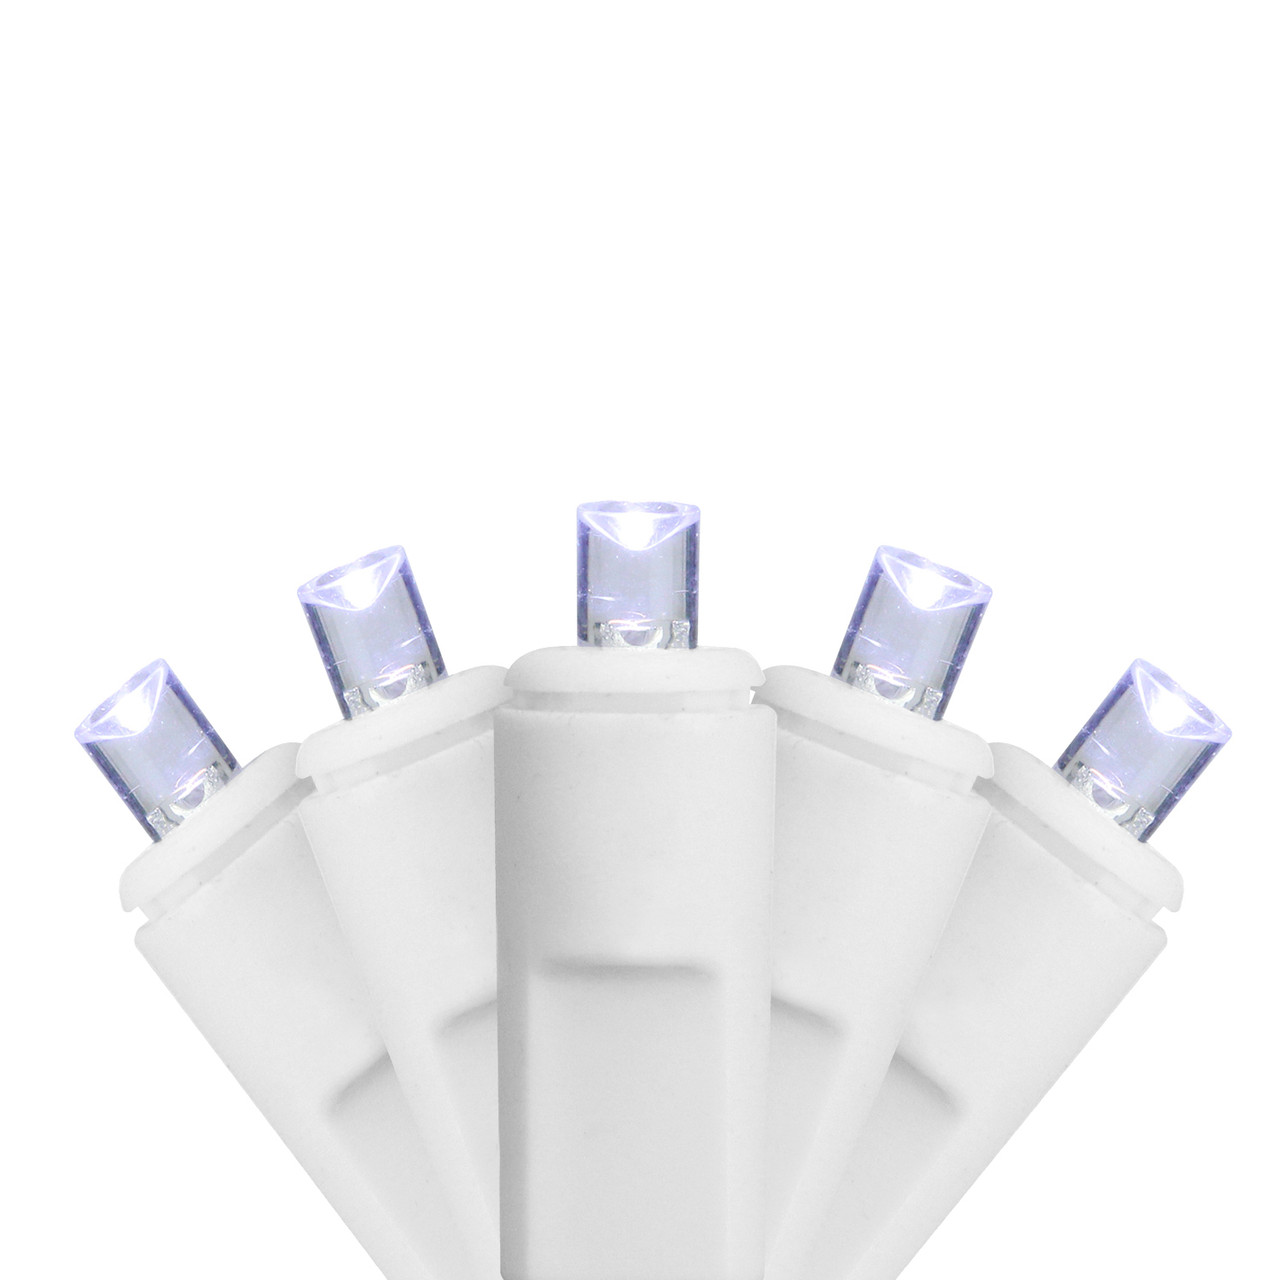 70 White Led Twinkling Commercial Wide Angle Icicle Christmas Lights 9 Ft White Wire 31466651